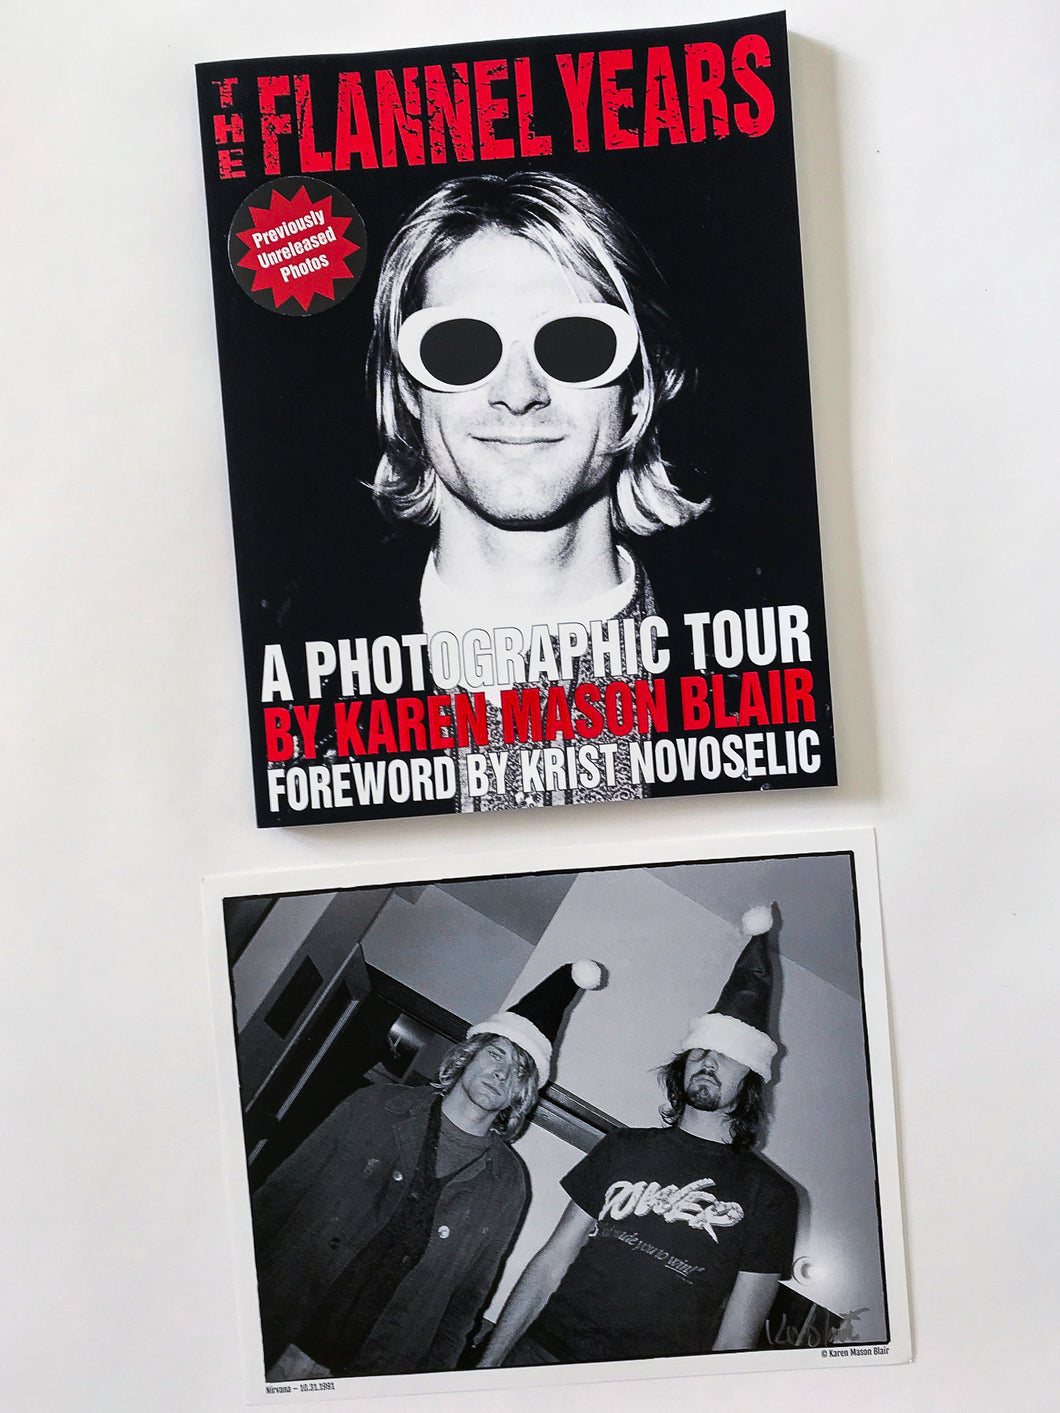 The Flannel Years book - previously unreleased grunge photos bundle - signed book + 1 signed 8x10 photo